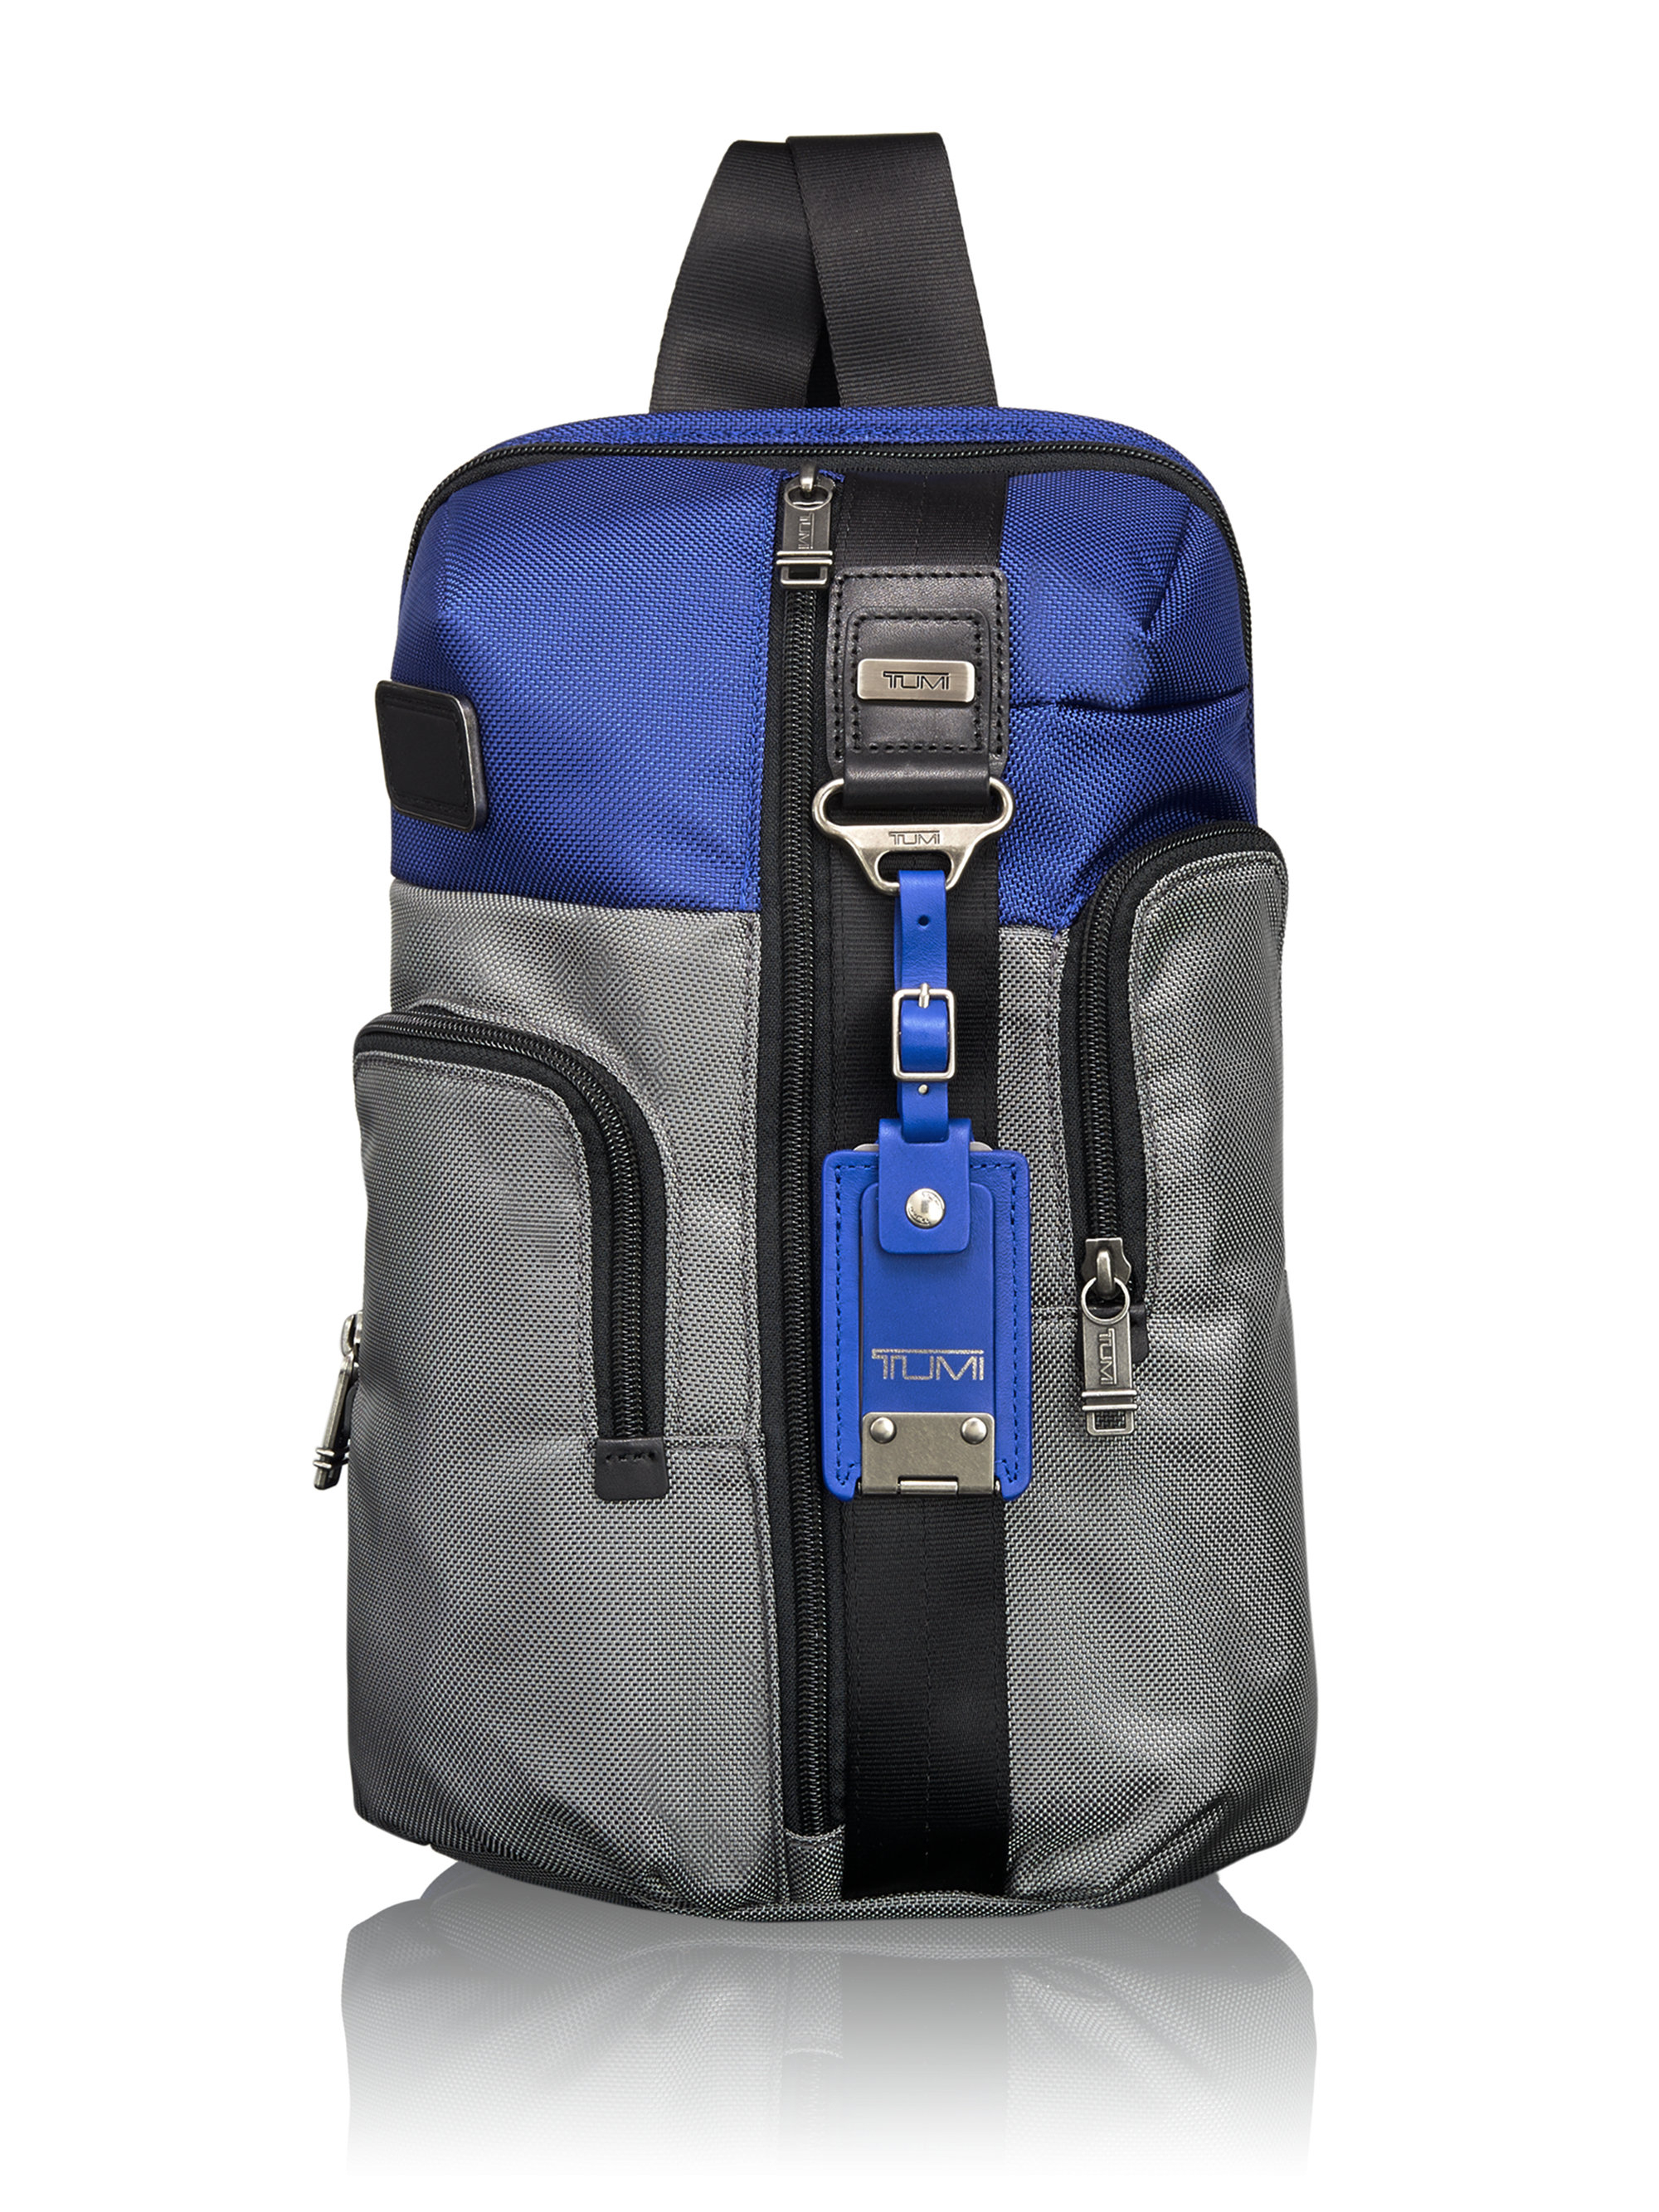 Elegant Tumi Alpha Bravo for Cool Travel Bag Ideas: Alpha Bravo Tumi Backpack | Tumi Alpha Bravo | Tumi Alpha Bravo Knox Backpack Leather